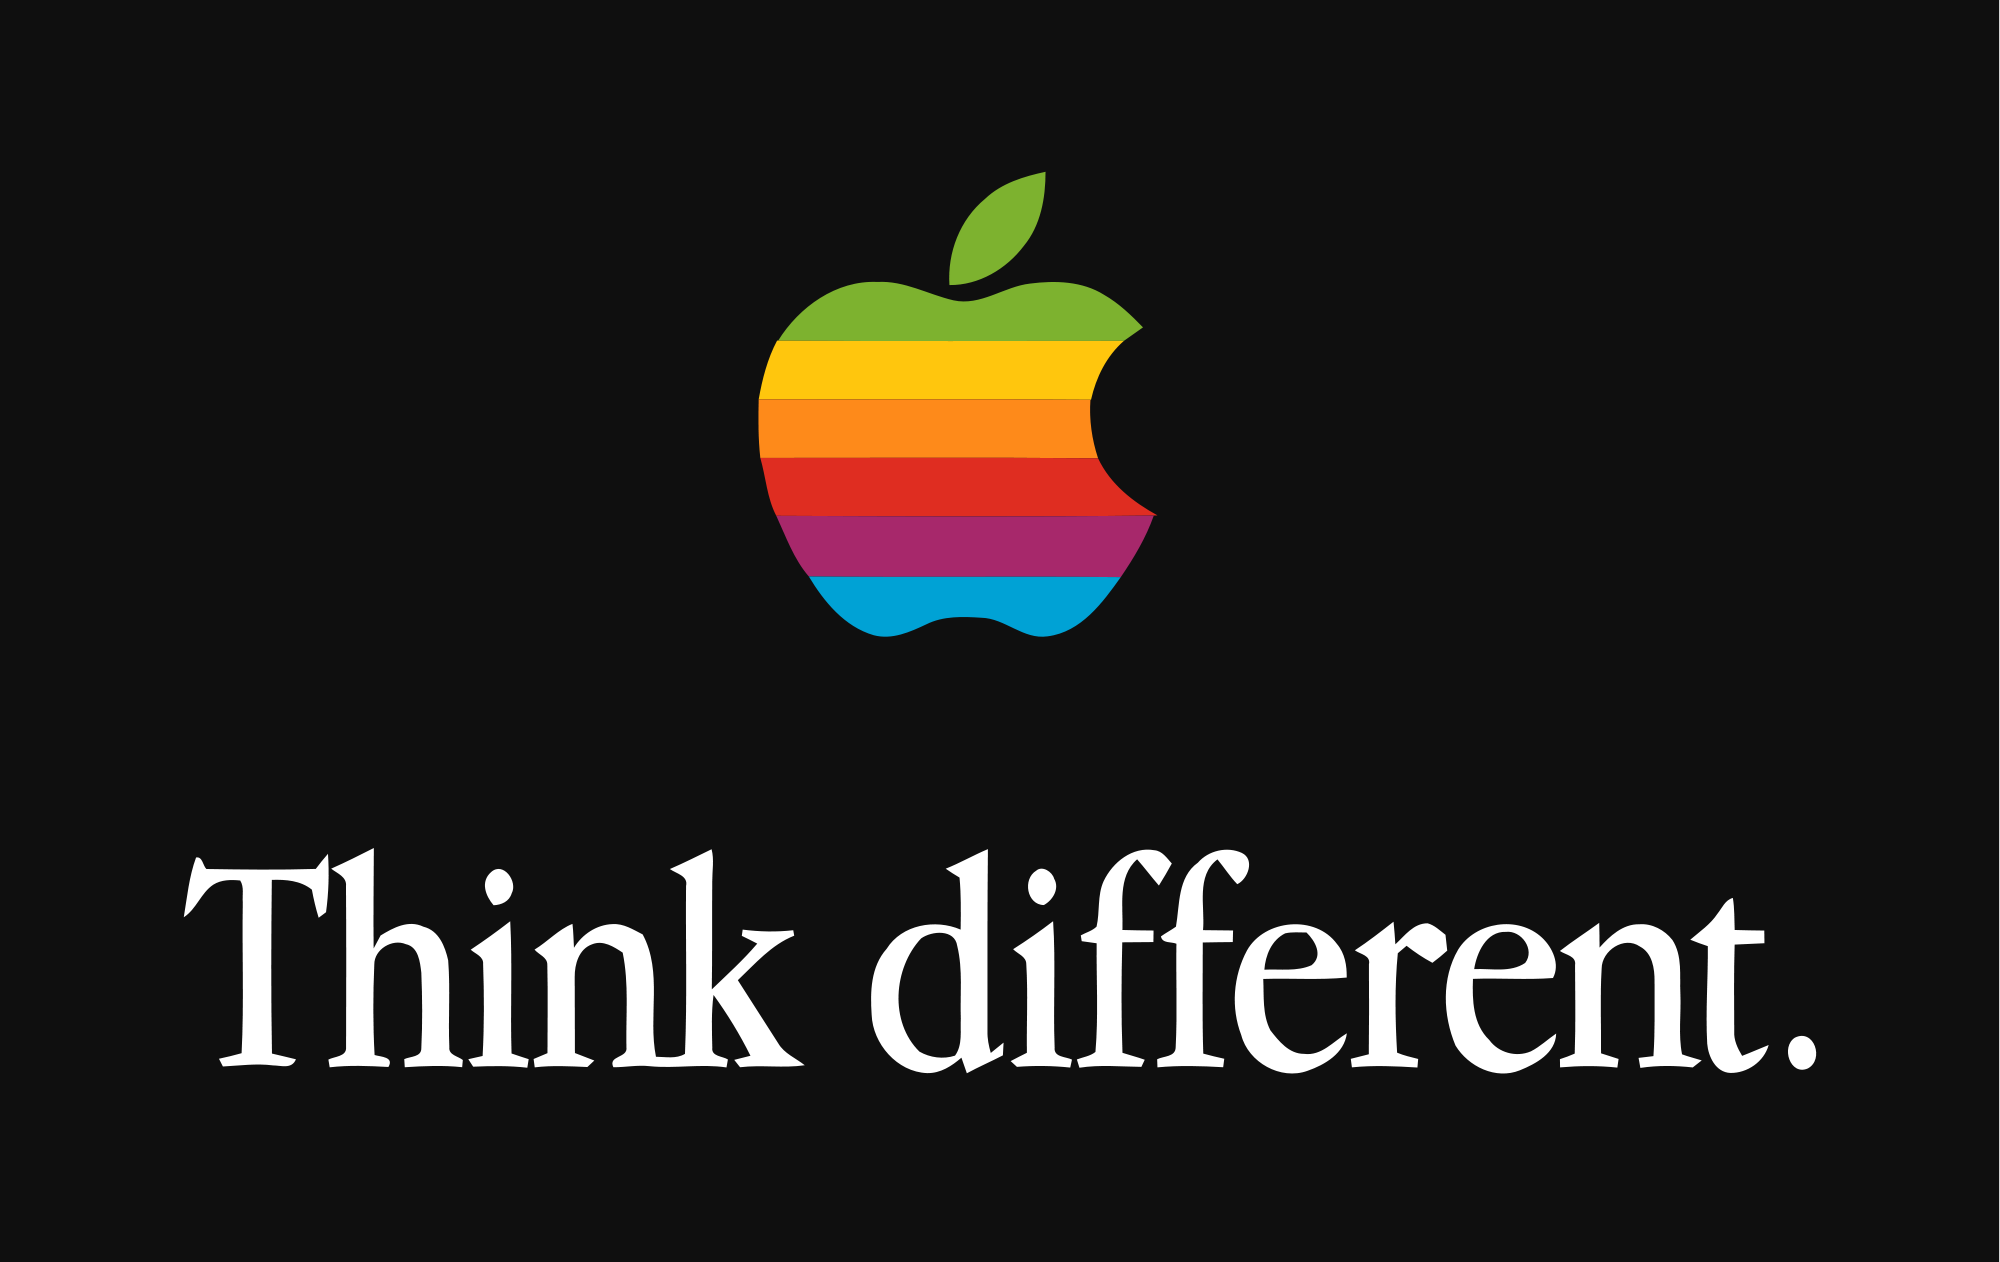 Apple Think Different - iDevice.ro